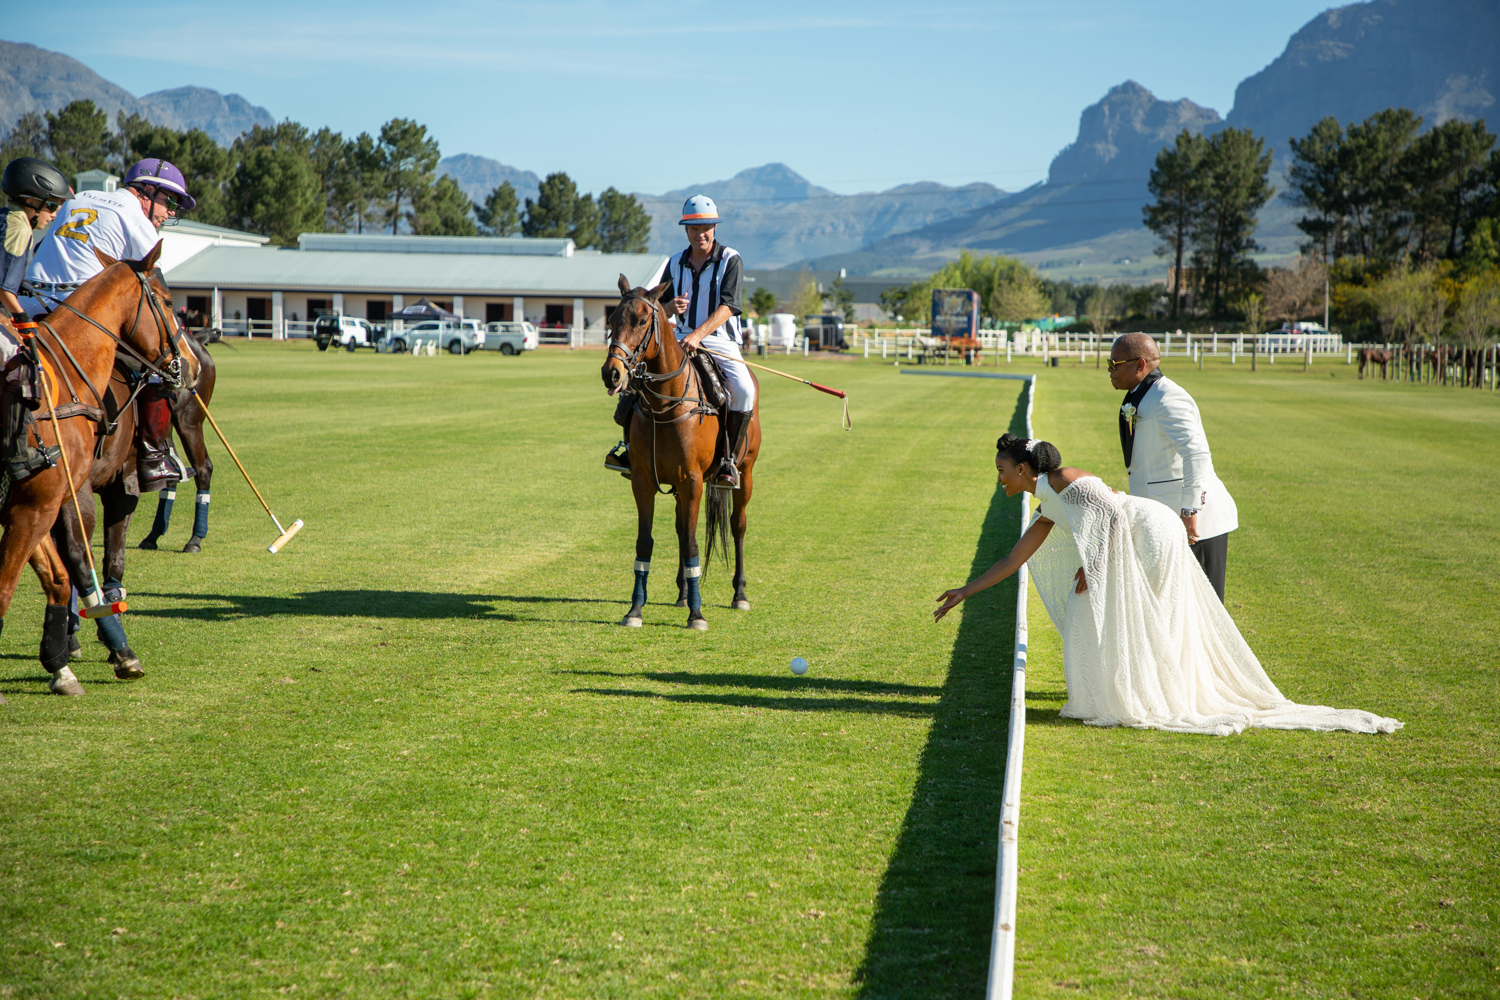 an image taken by Vividblue of the wedding couple next to a polo match where the bride trows the ball in.